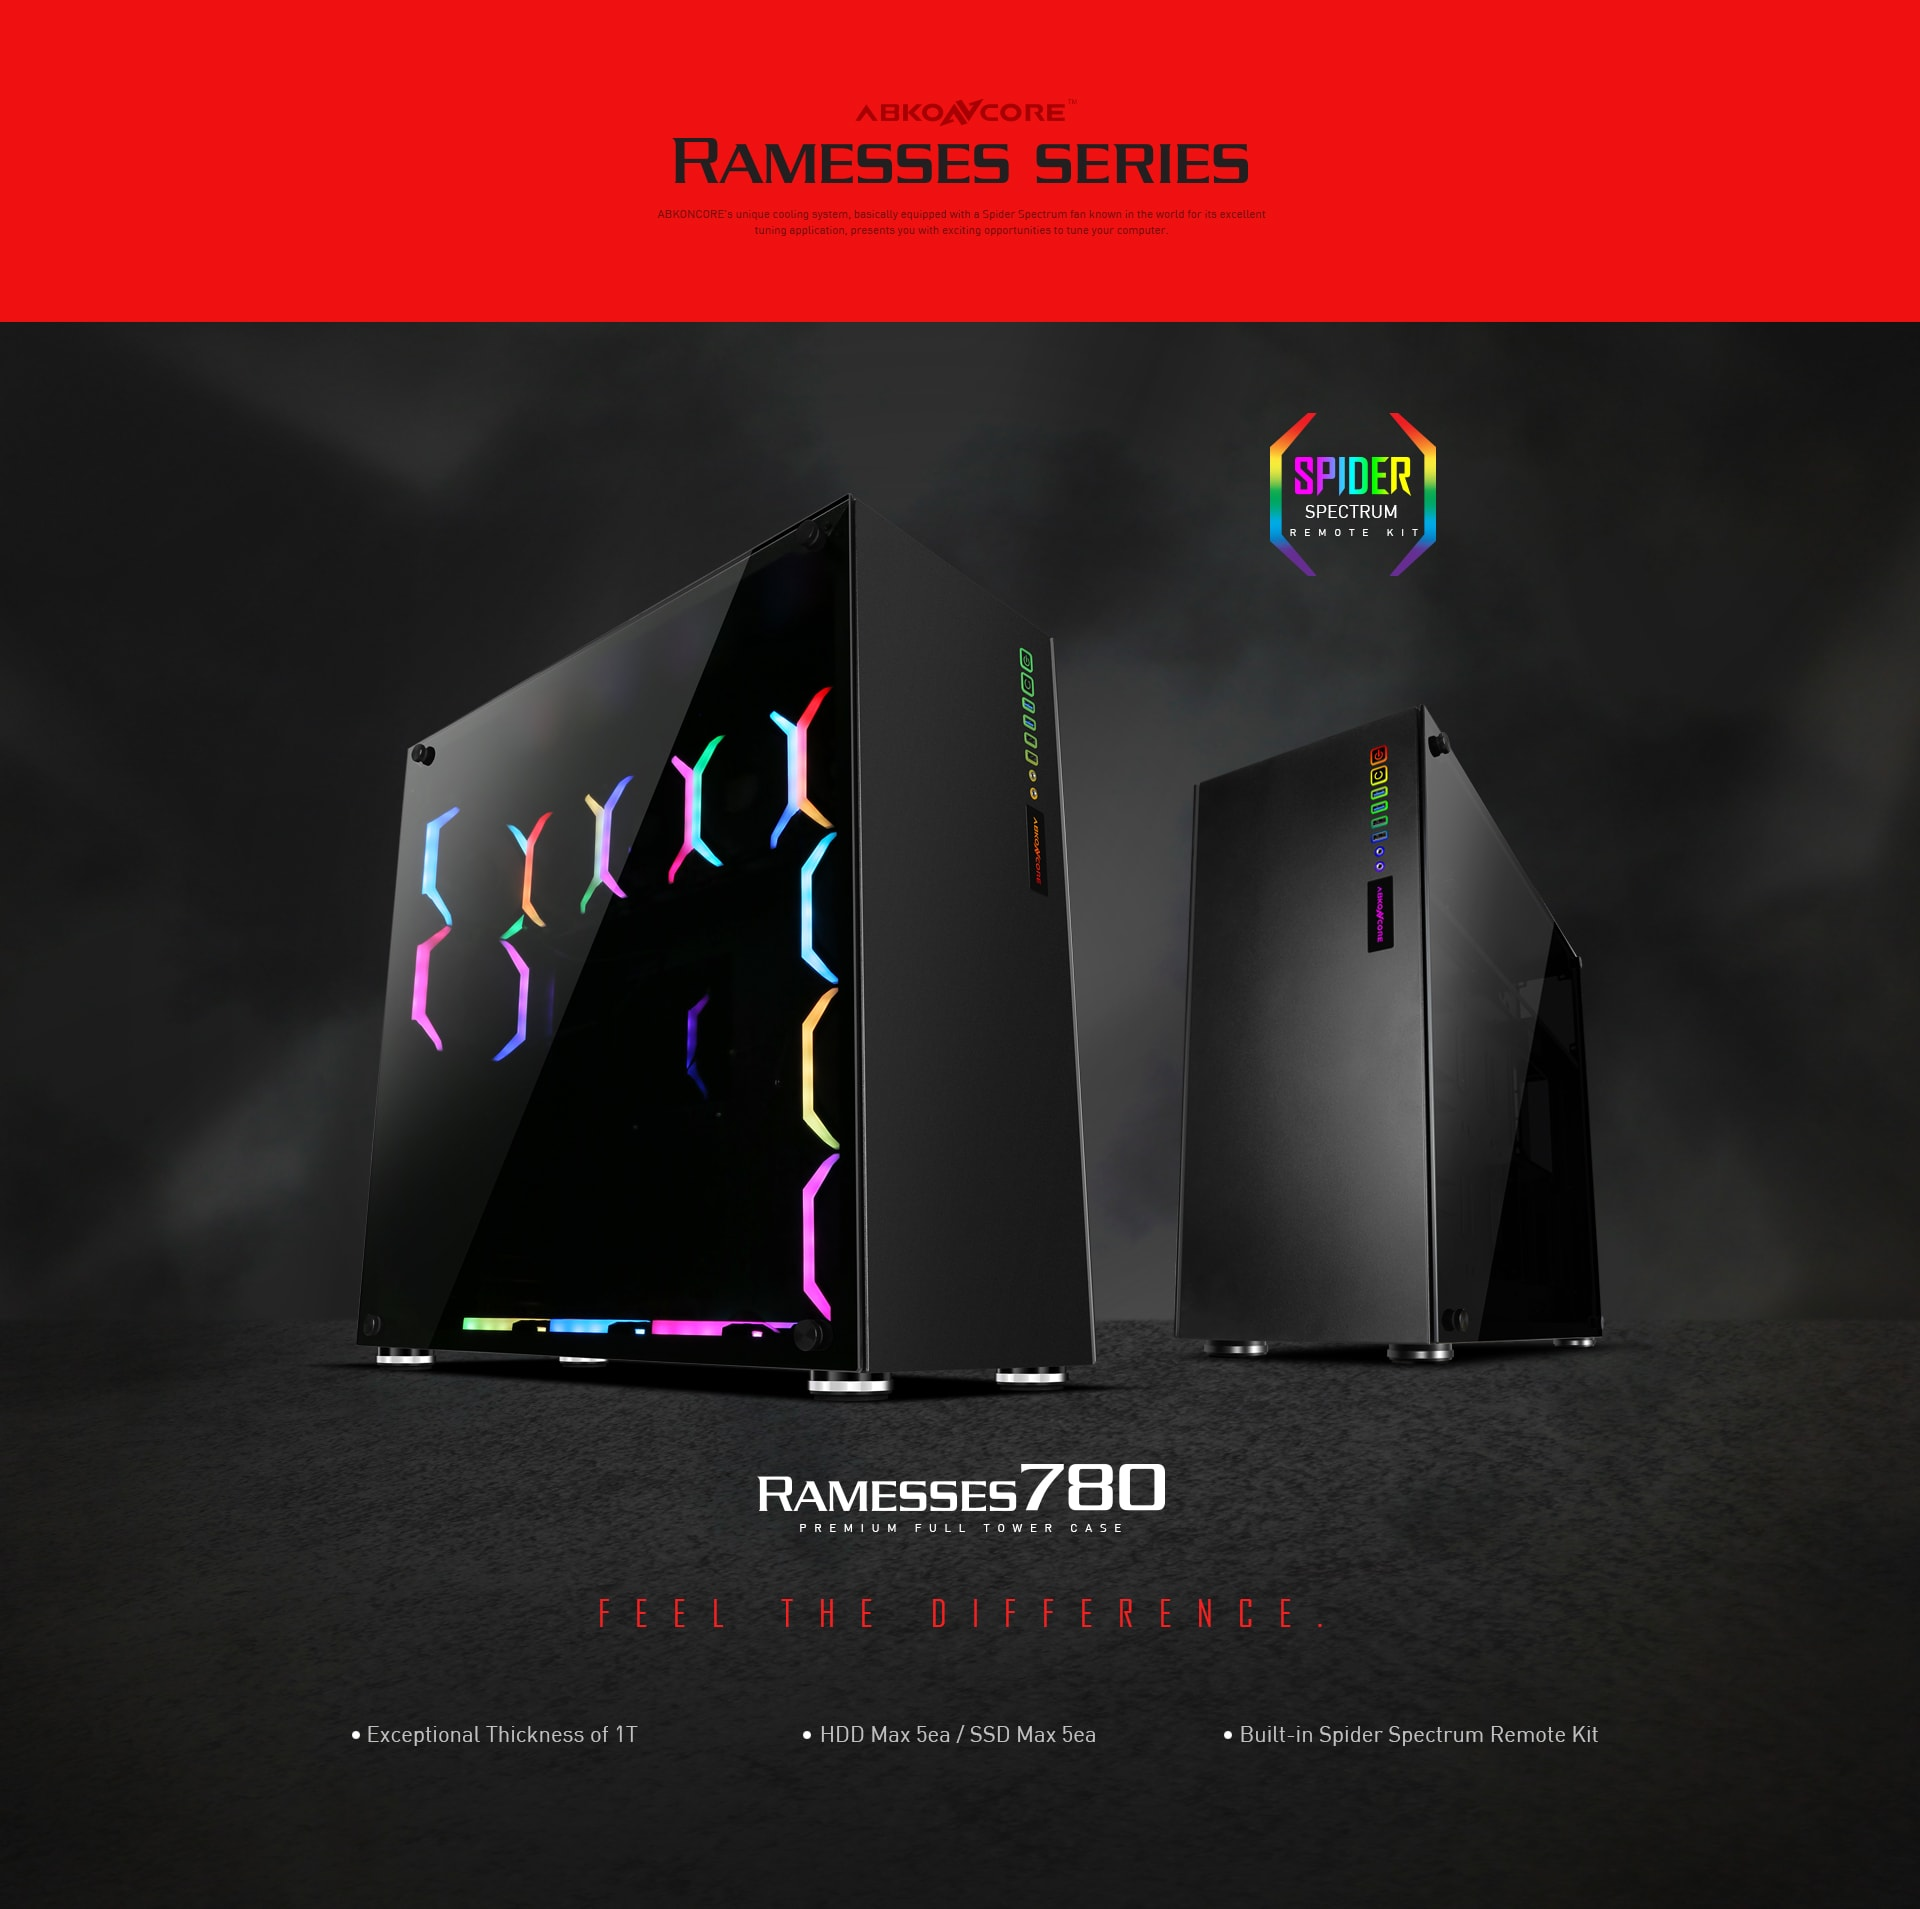 ABKO NCORE - Ramesses 780, E-ATX Full Tower, 12 Pre-Installed Addressable  RGB Spider Fans, Tempered Glass Sides Panels - Newegg com